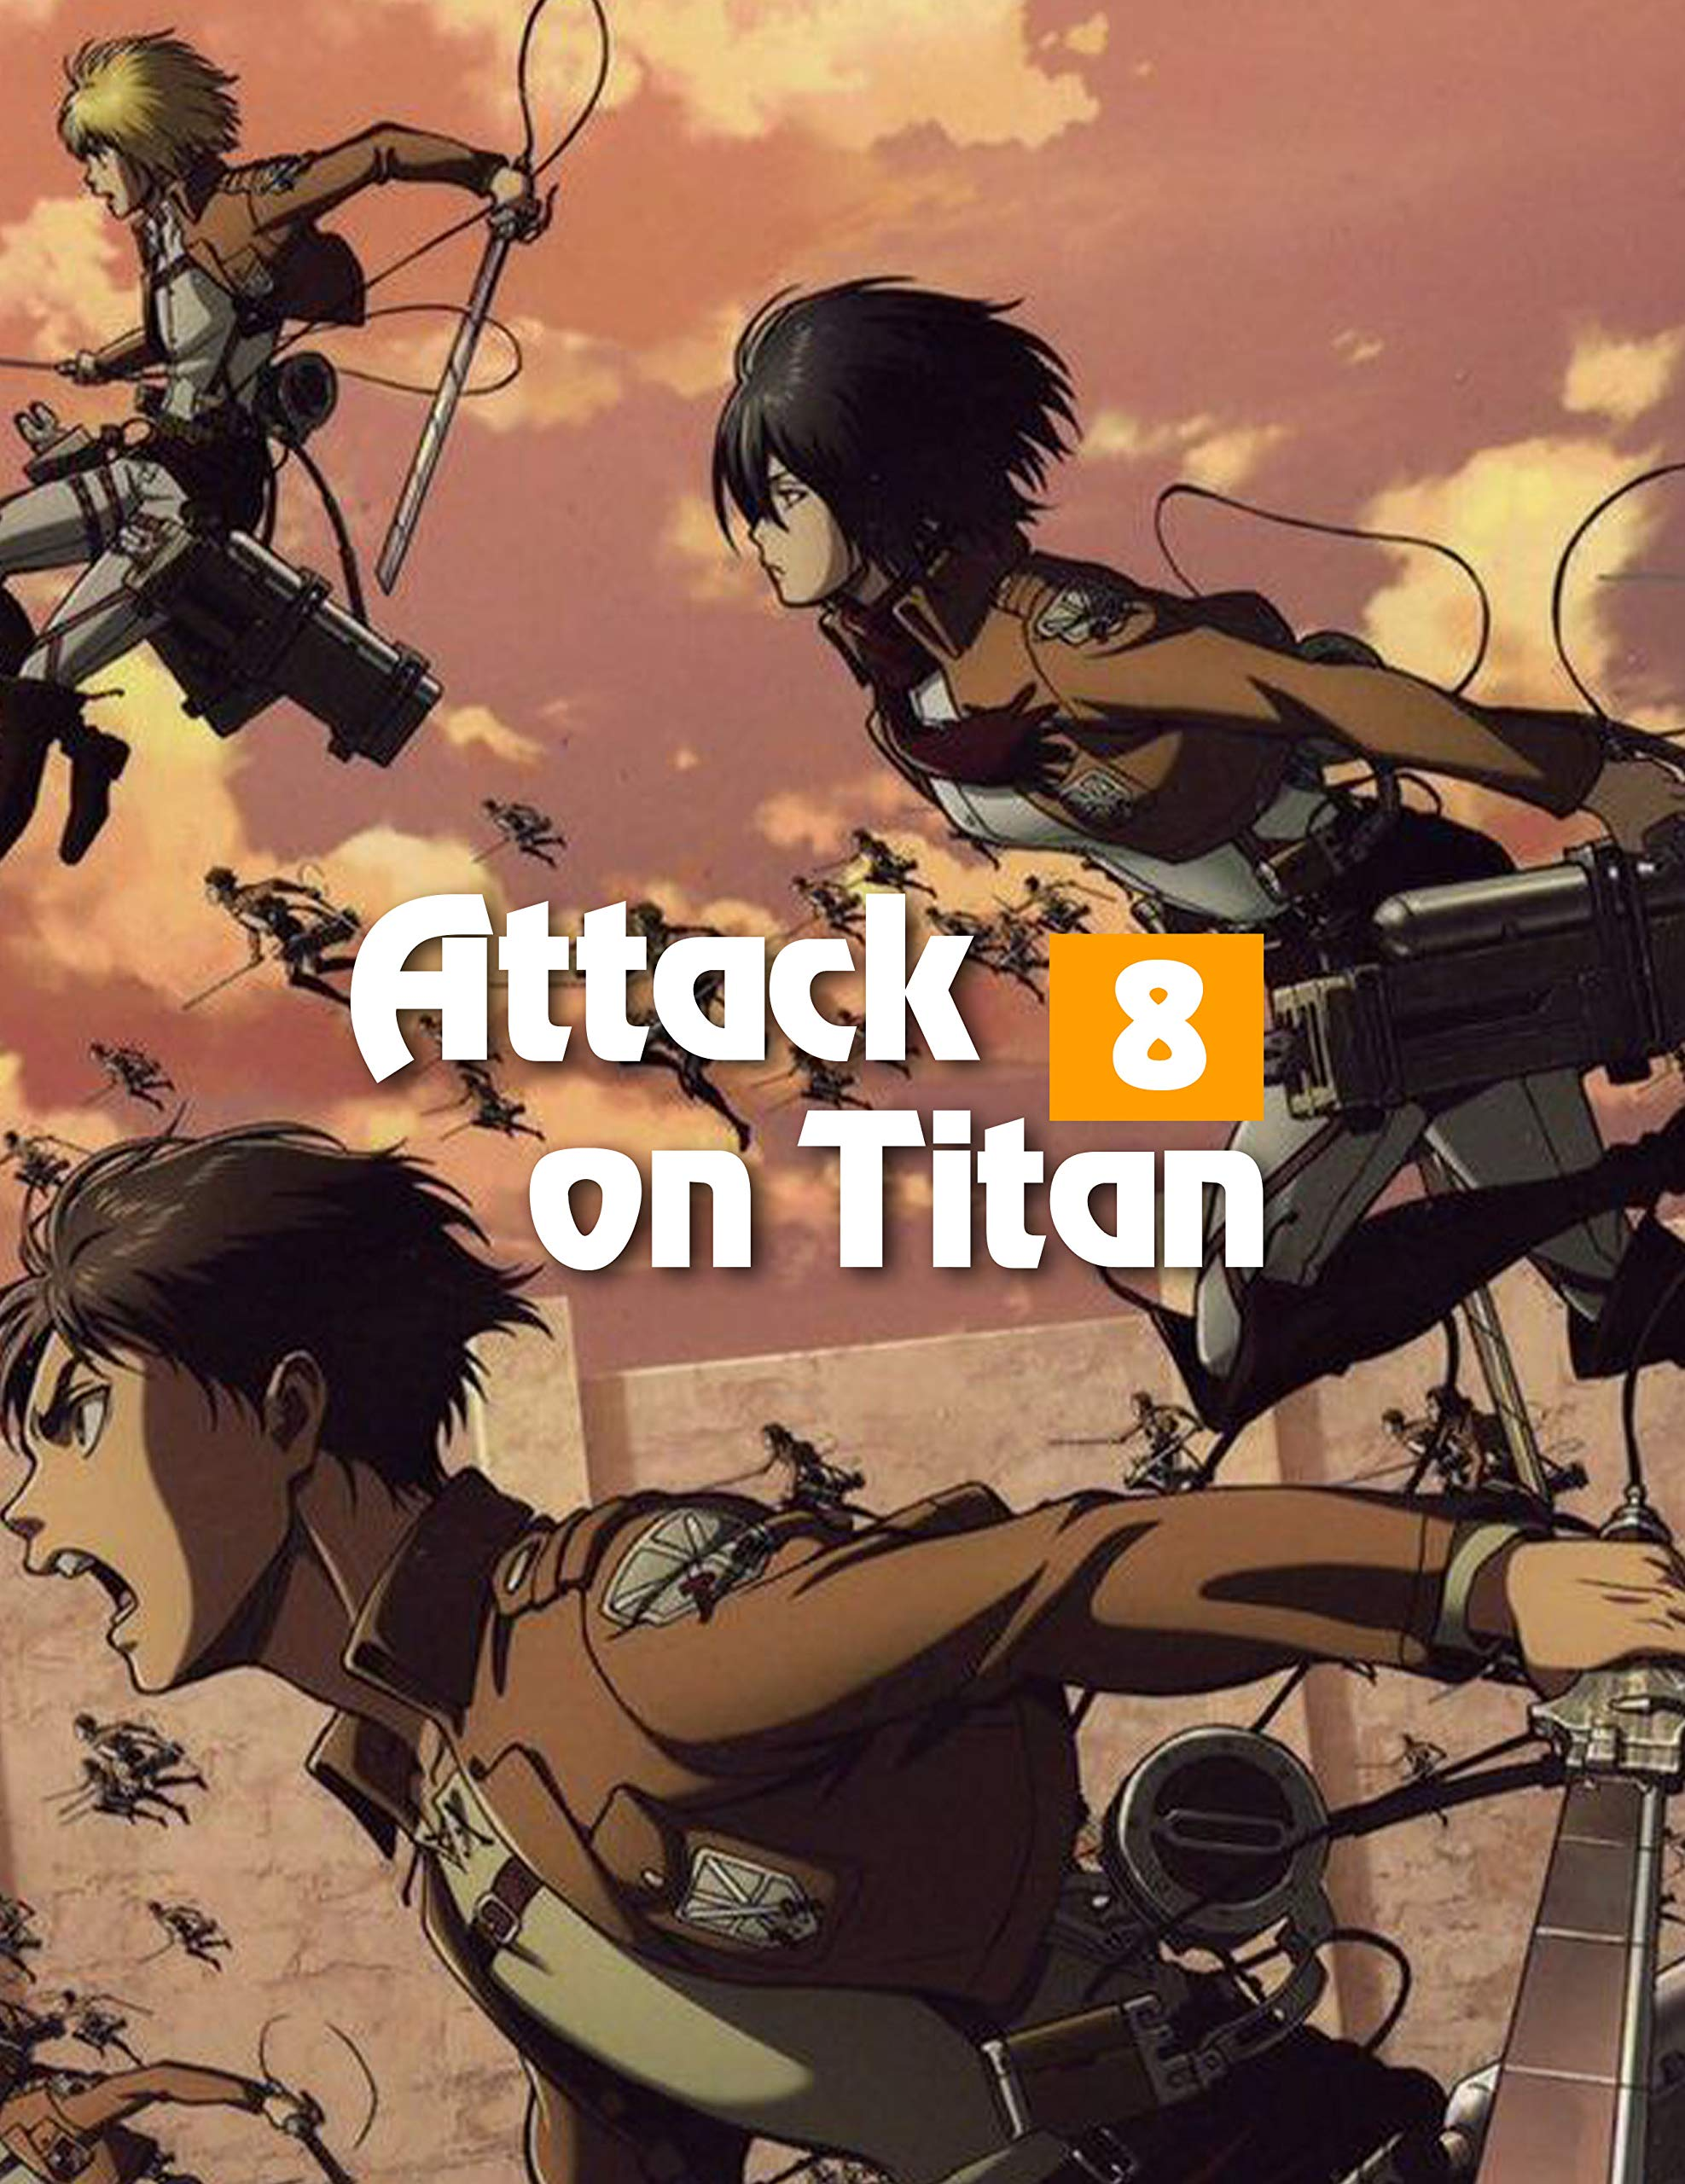 Action Attack On Titan: Attack On Titan Best Horror 8